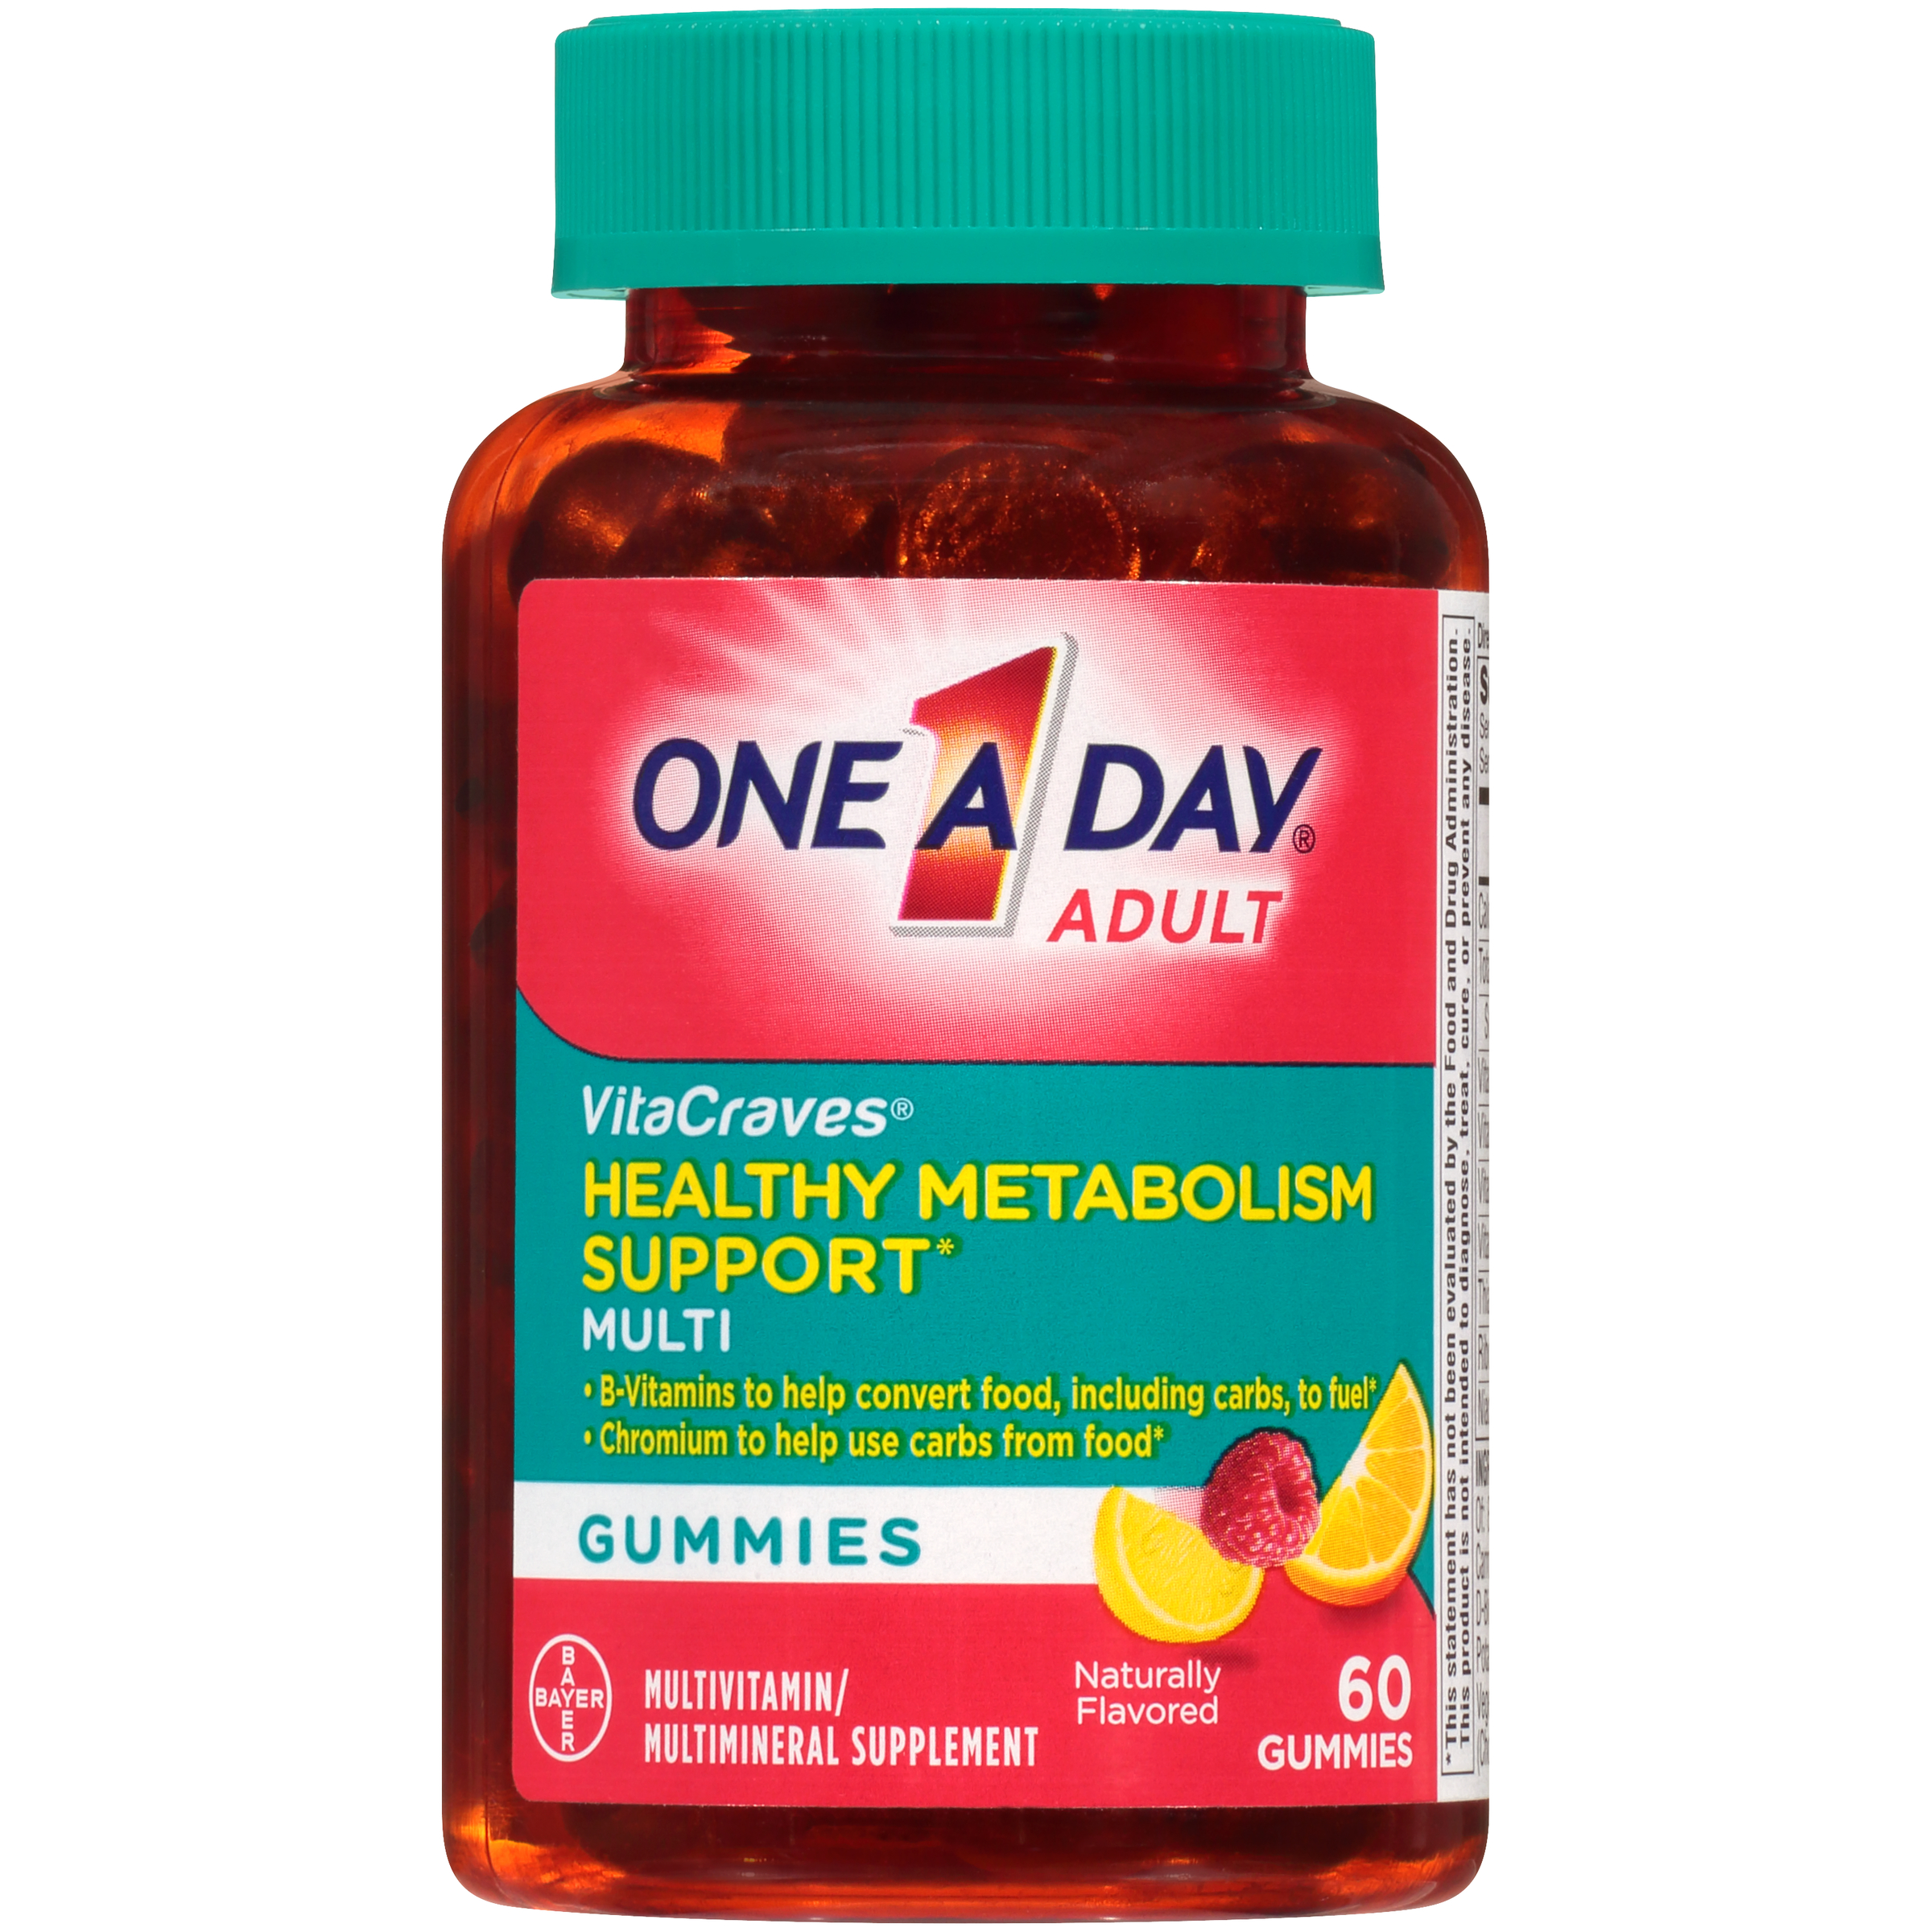 One A Day VitaCraves Multivitamin Gummies with Healthy Metabolism Support* , Supplement with Vitamins A, C, E, and B-Vitamins, 60 Count